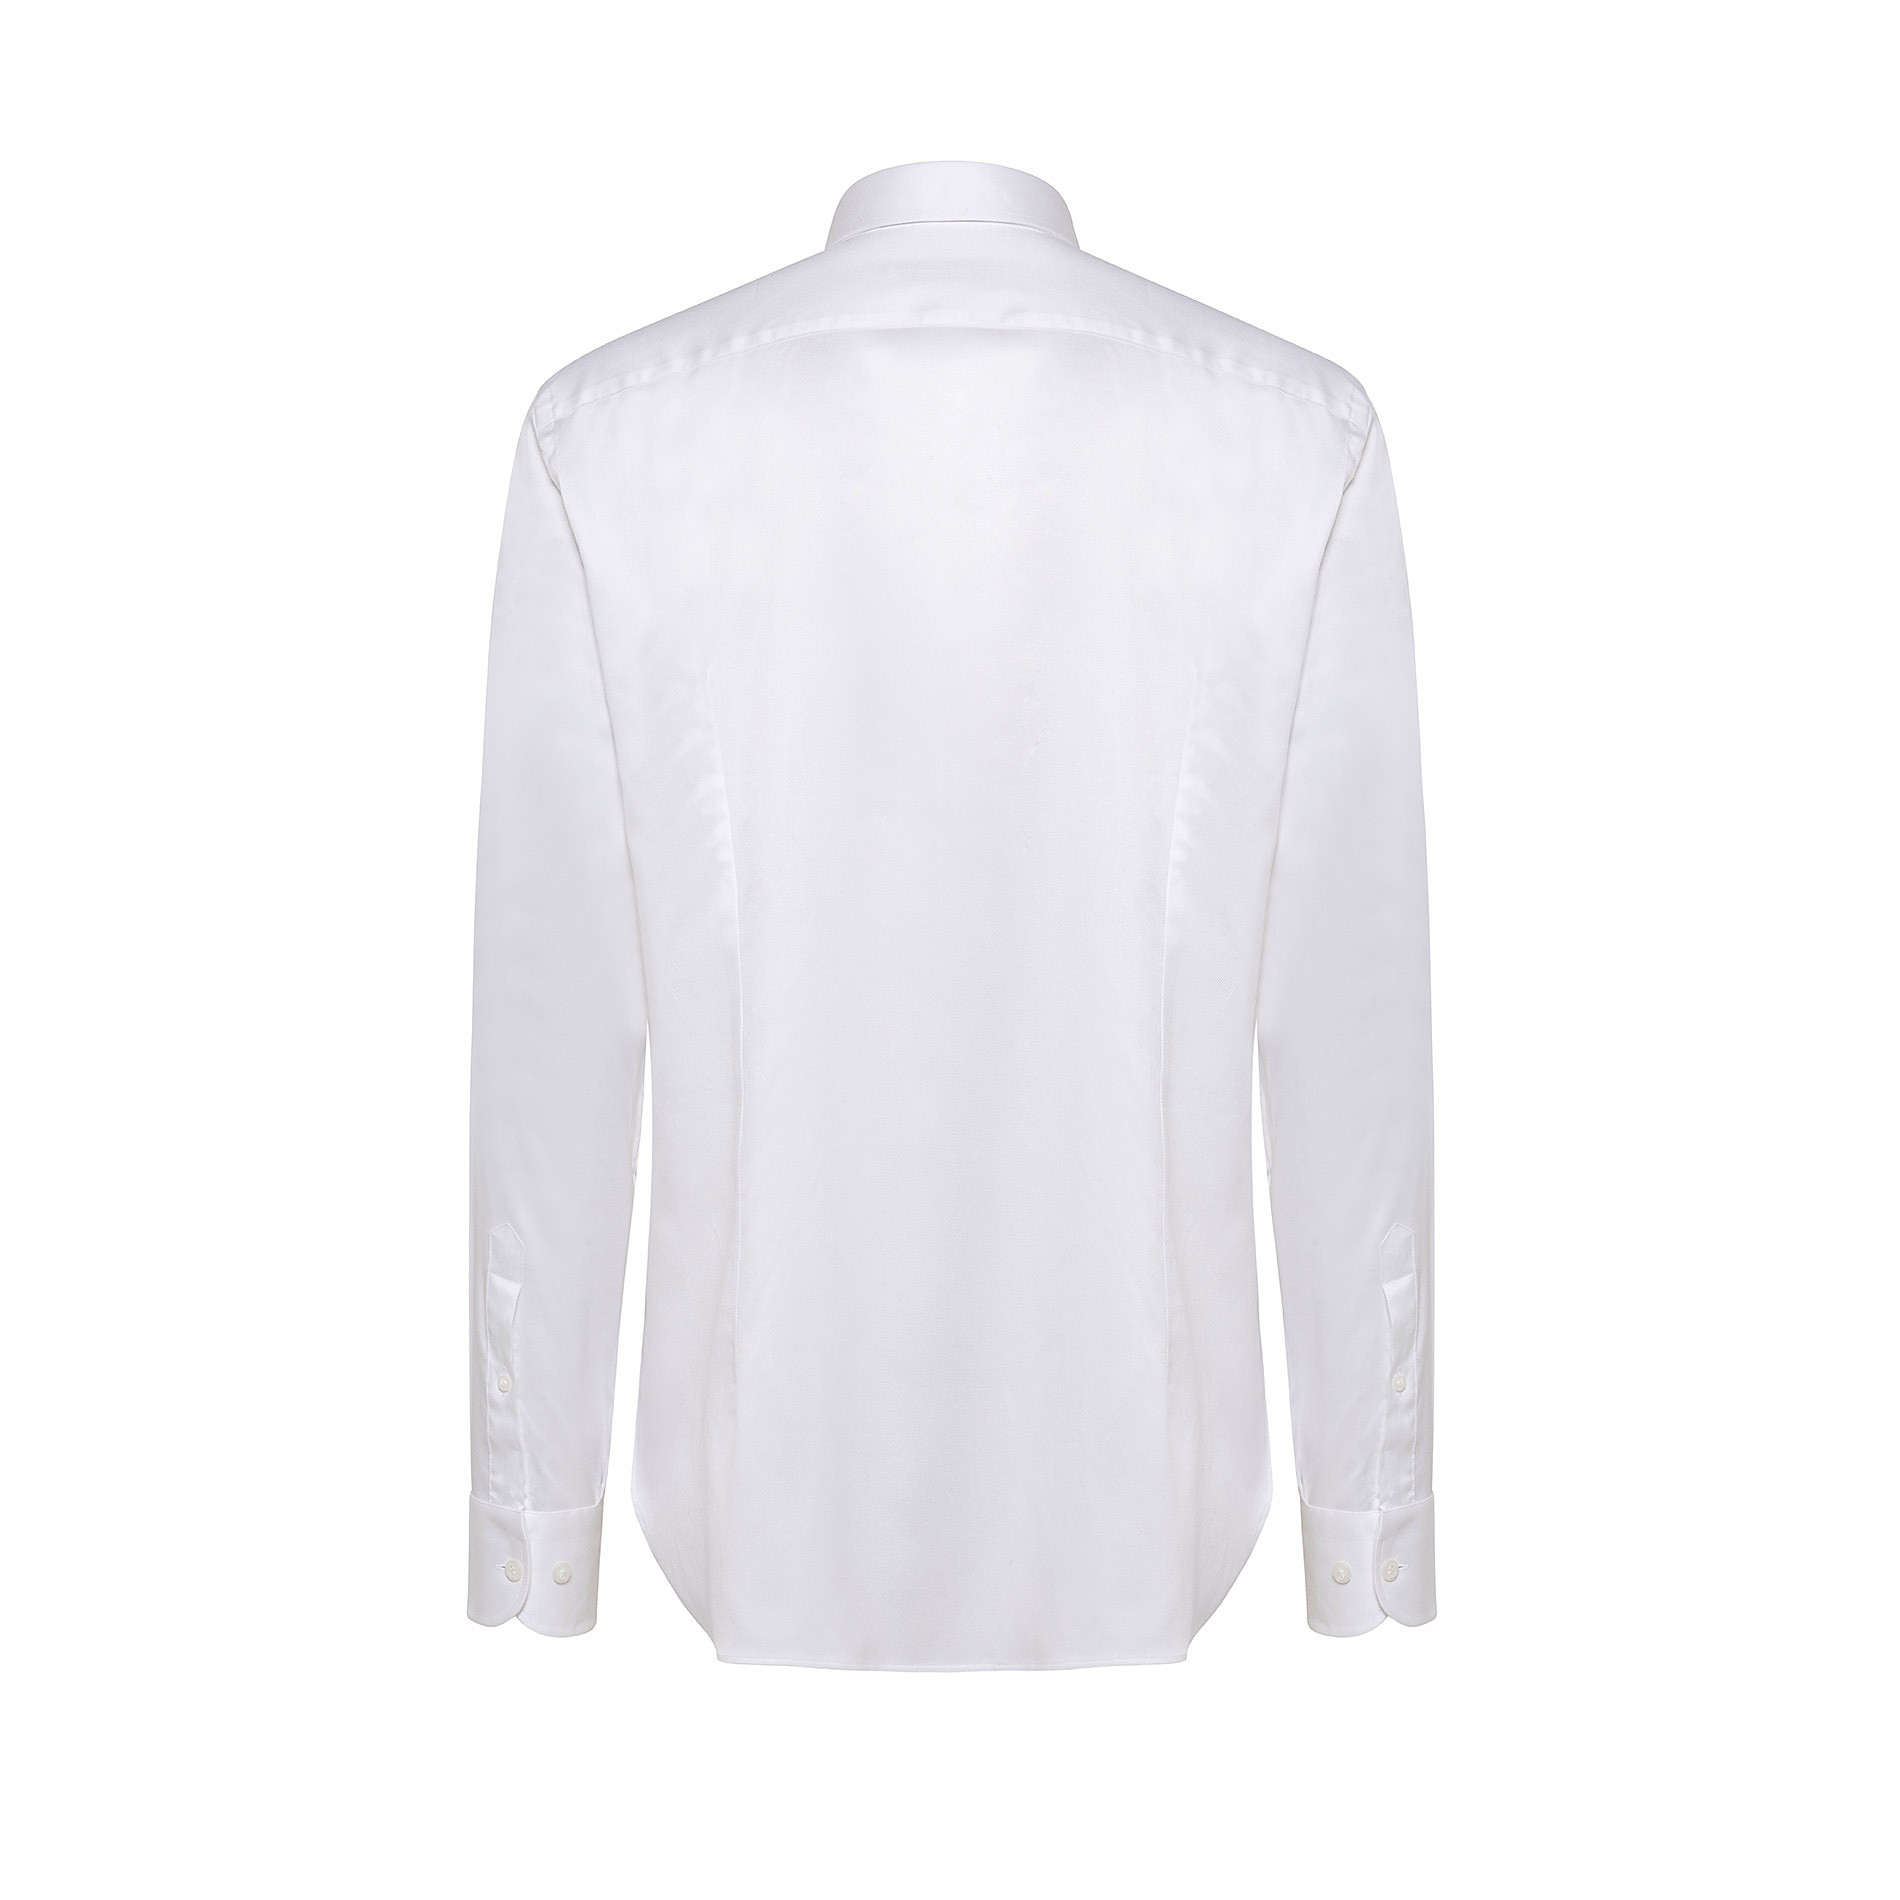 Camicia colletto francese regular fit in cotone, Bianco, large image number 1